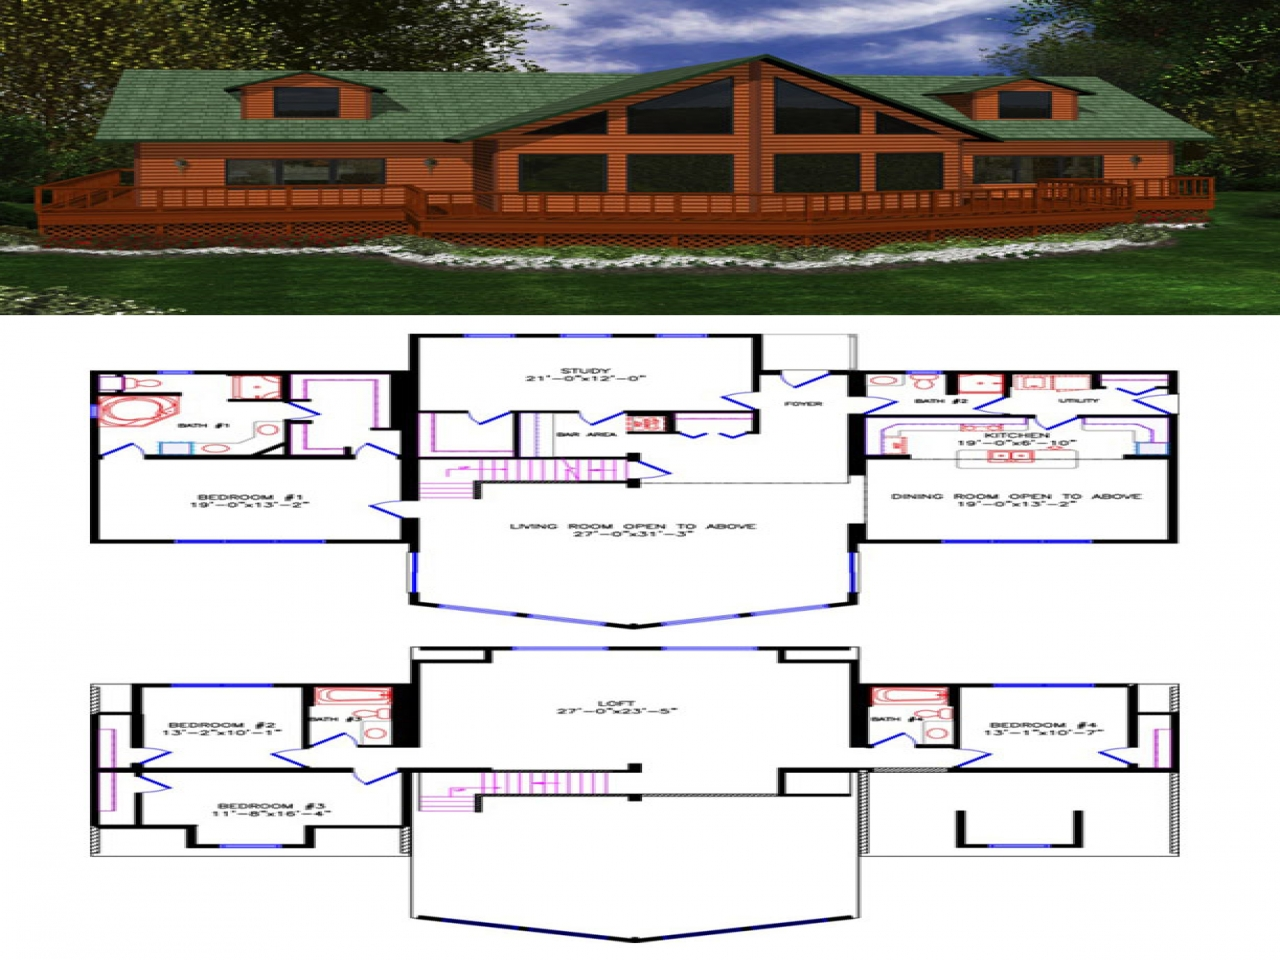 House Plans With Loft Open Loft Style House Plans Loft